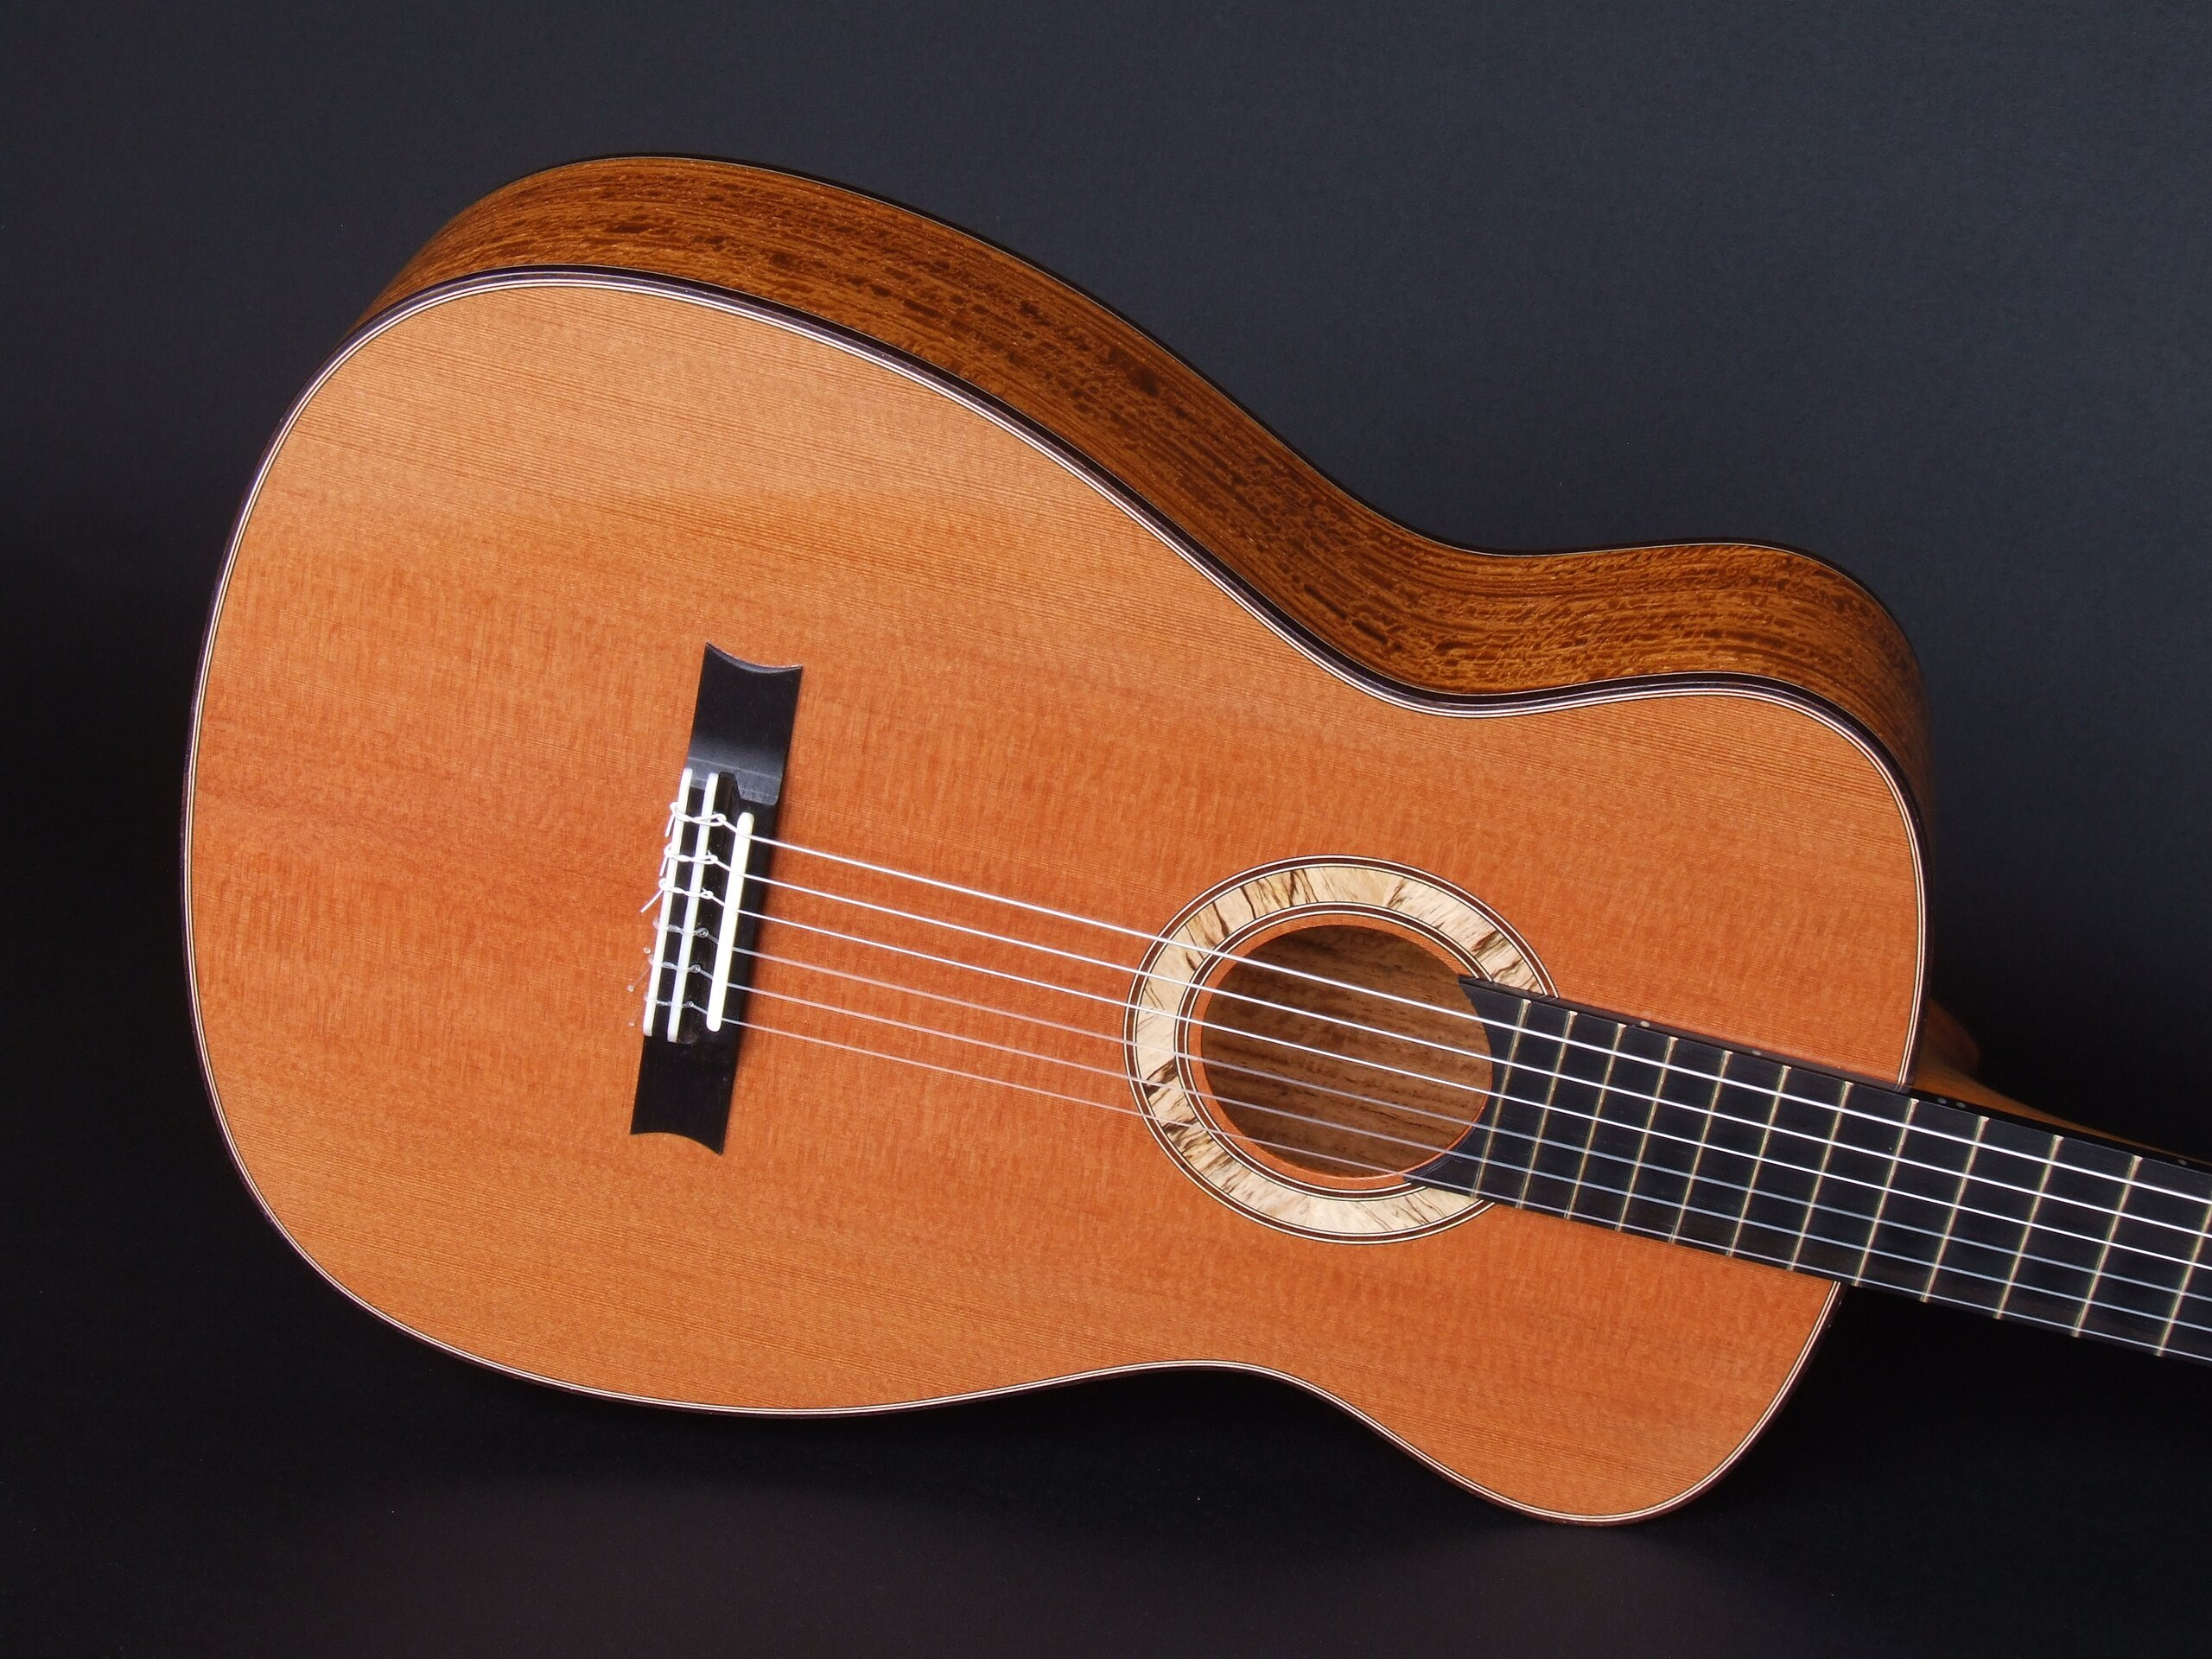 Neo-classical guitar with redwood top and spalted blackwood rosette